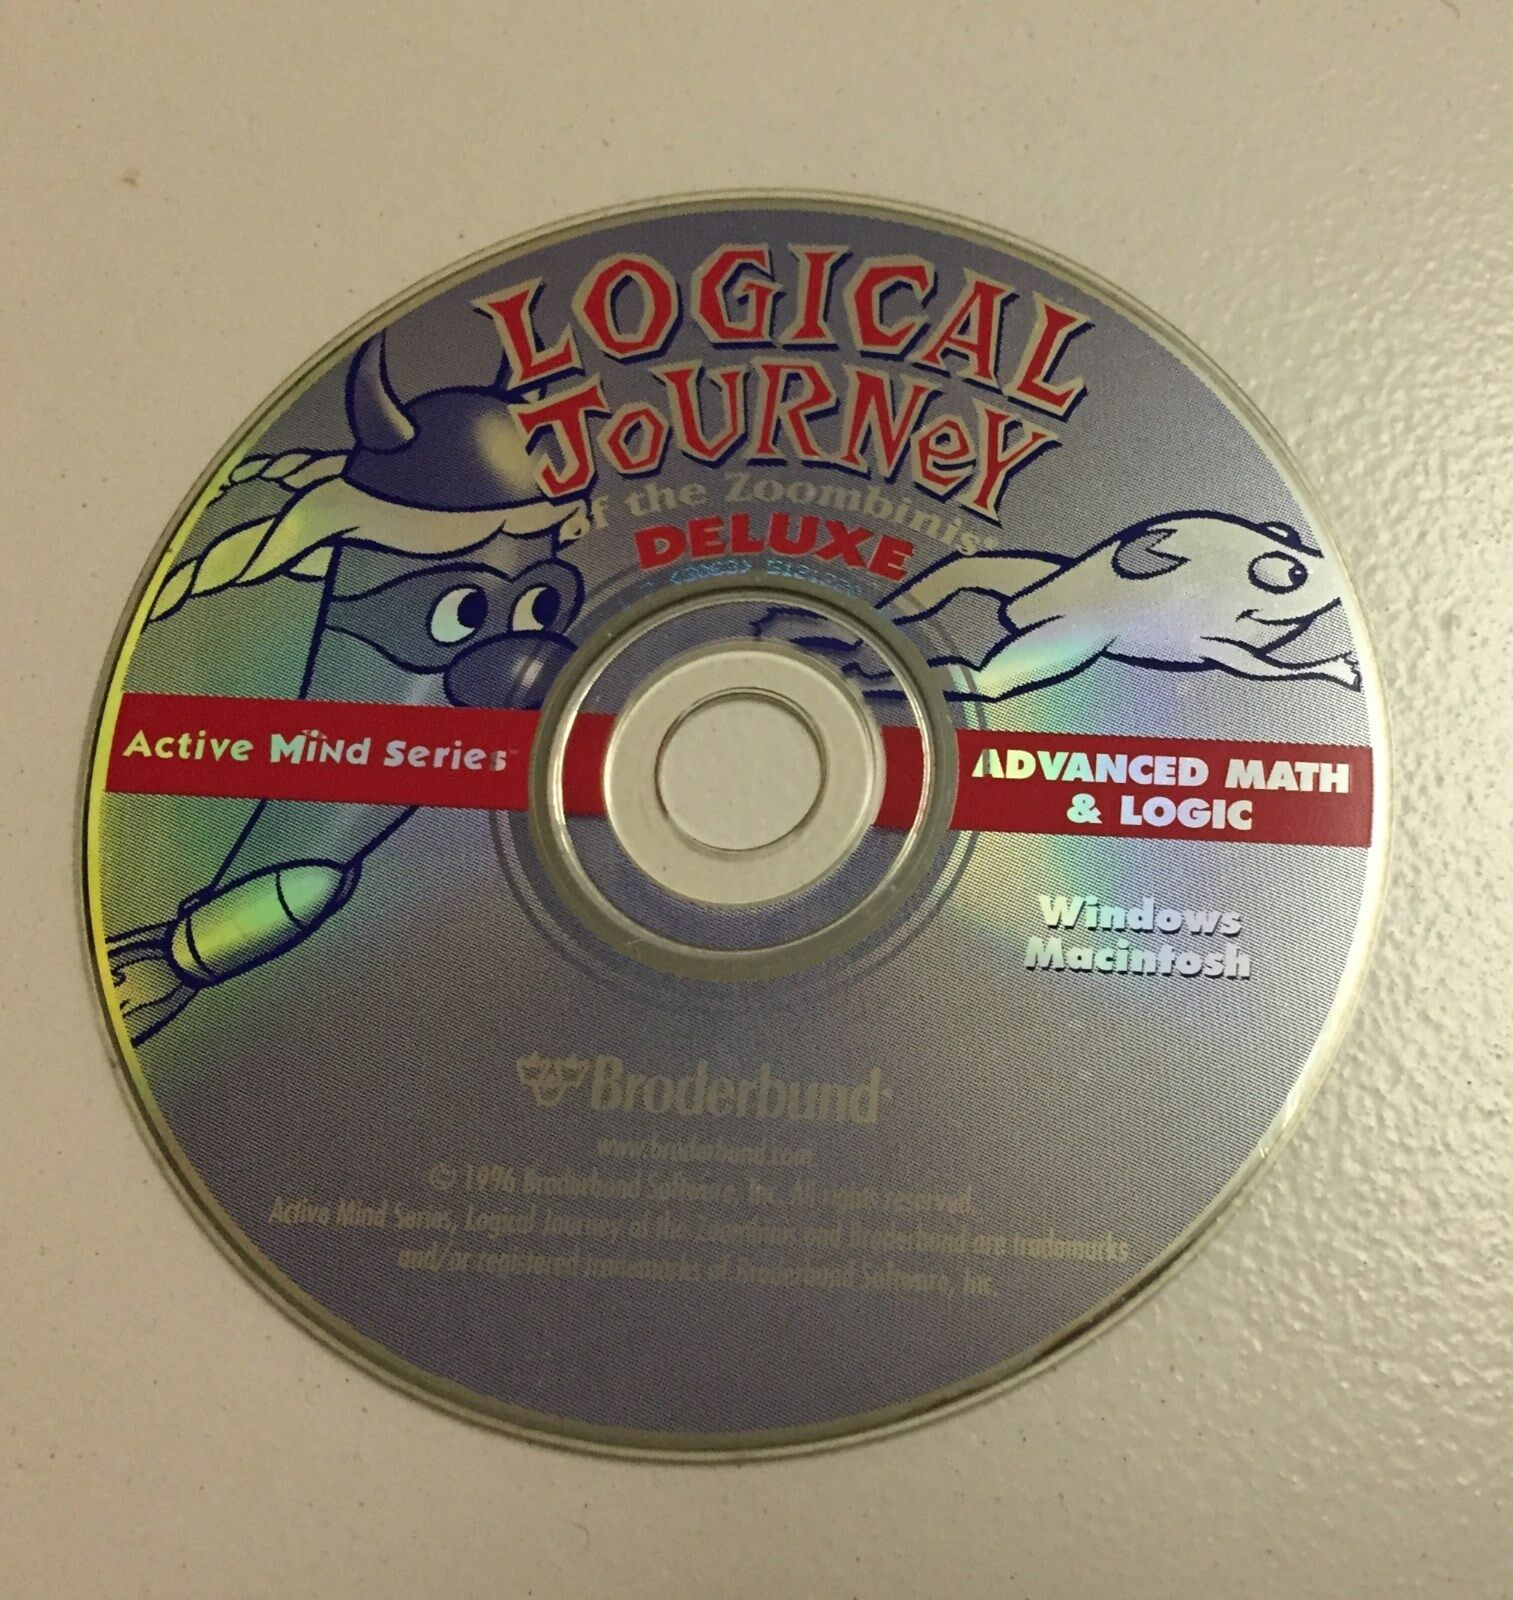 Logical Journey of the Zoombinis Deluxe - Advance Math & Logic CD